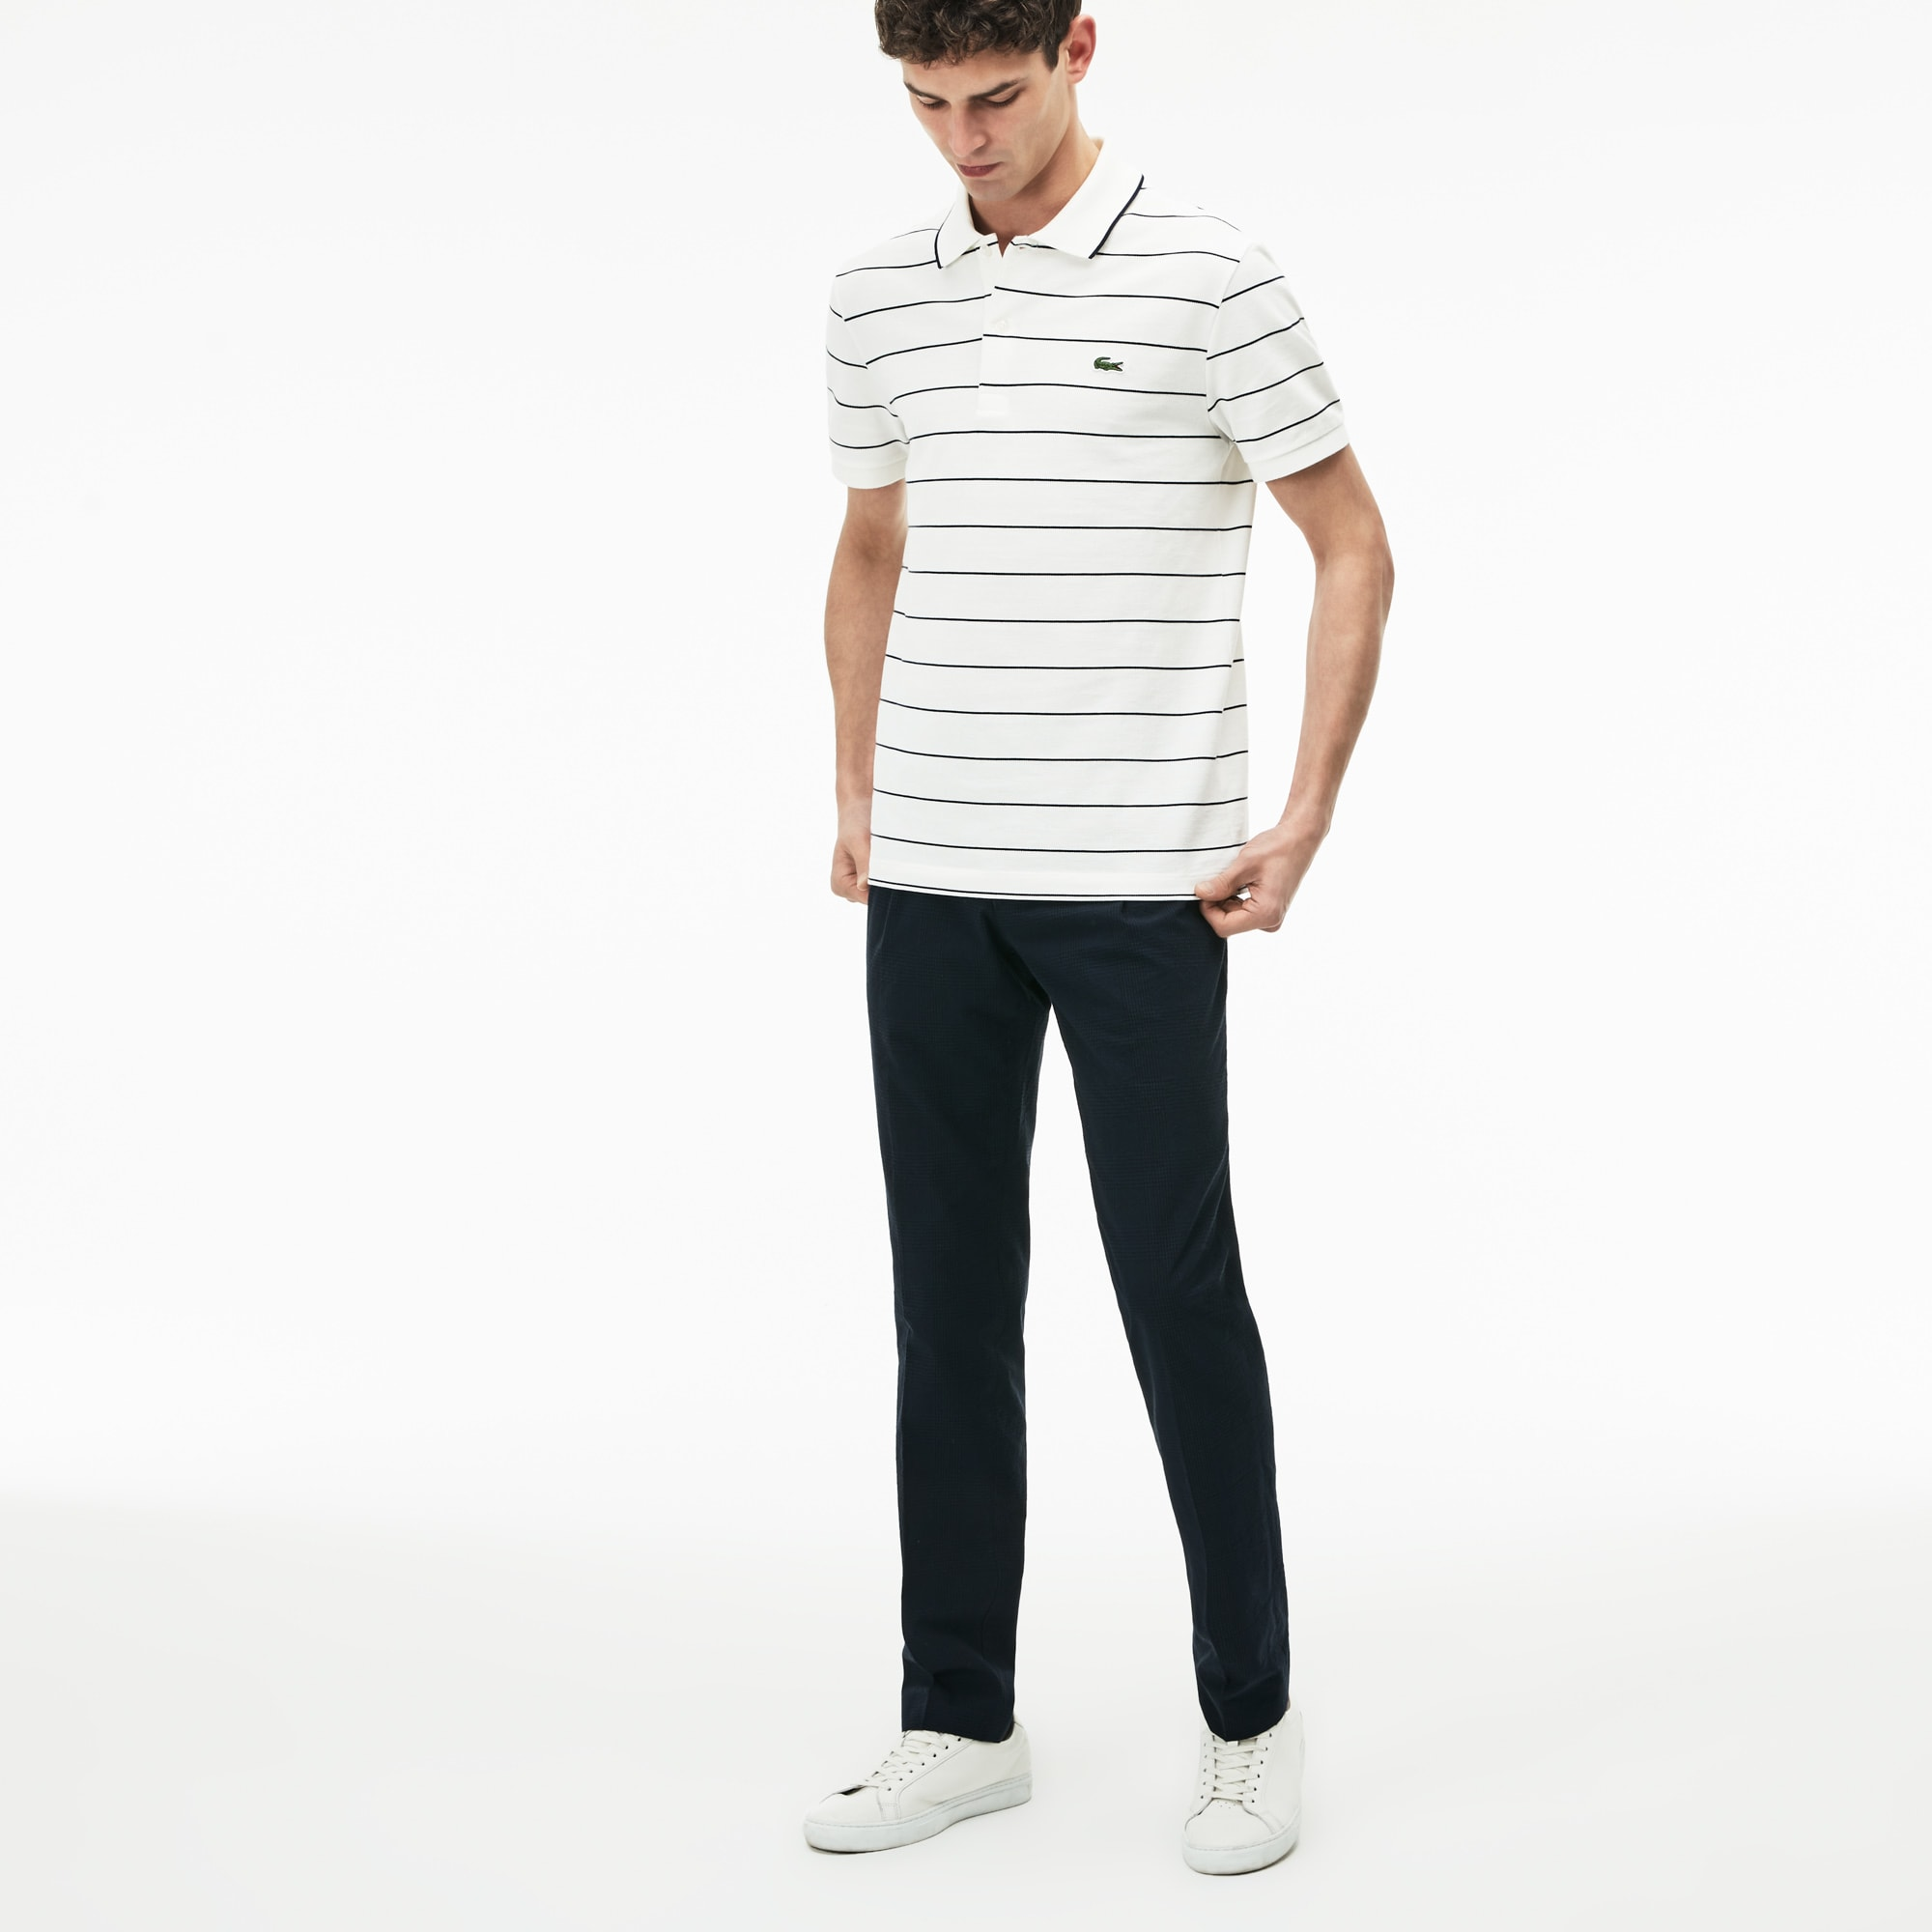 Men's Slim Fit Check Seersucker Pleated Chino Pants